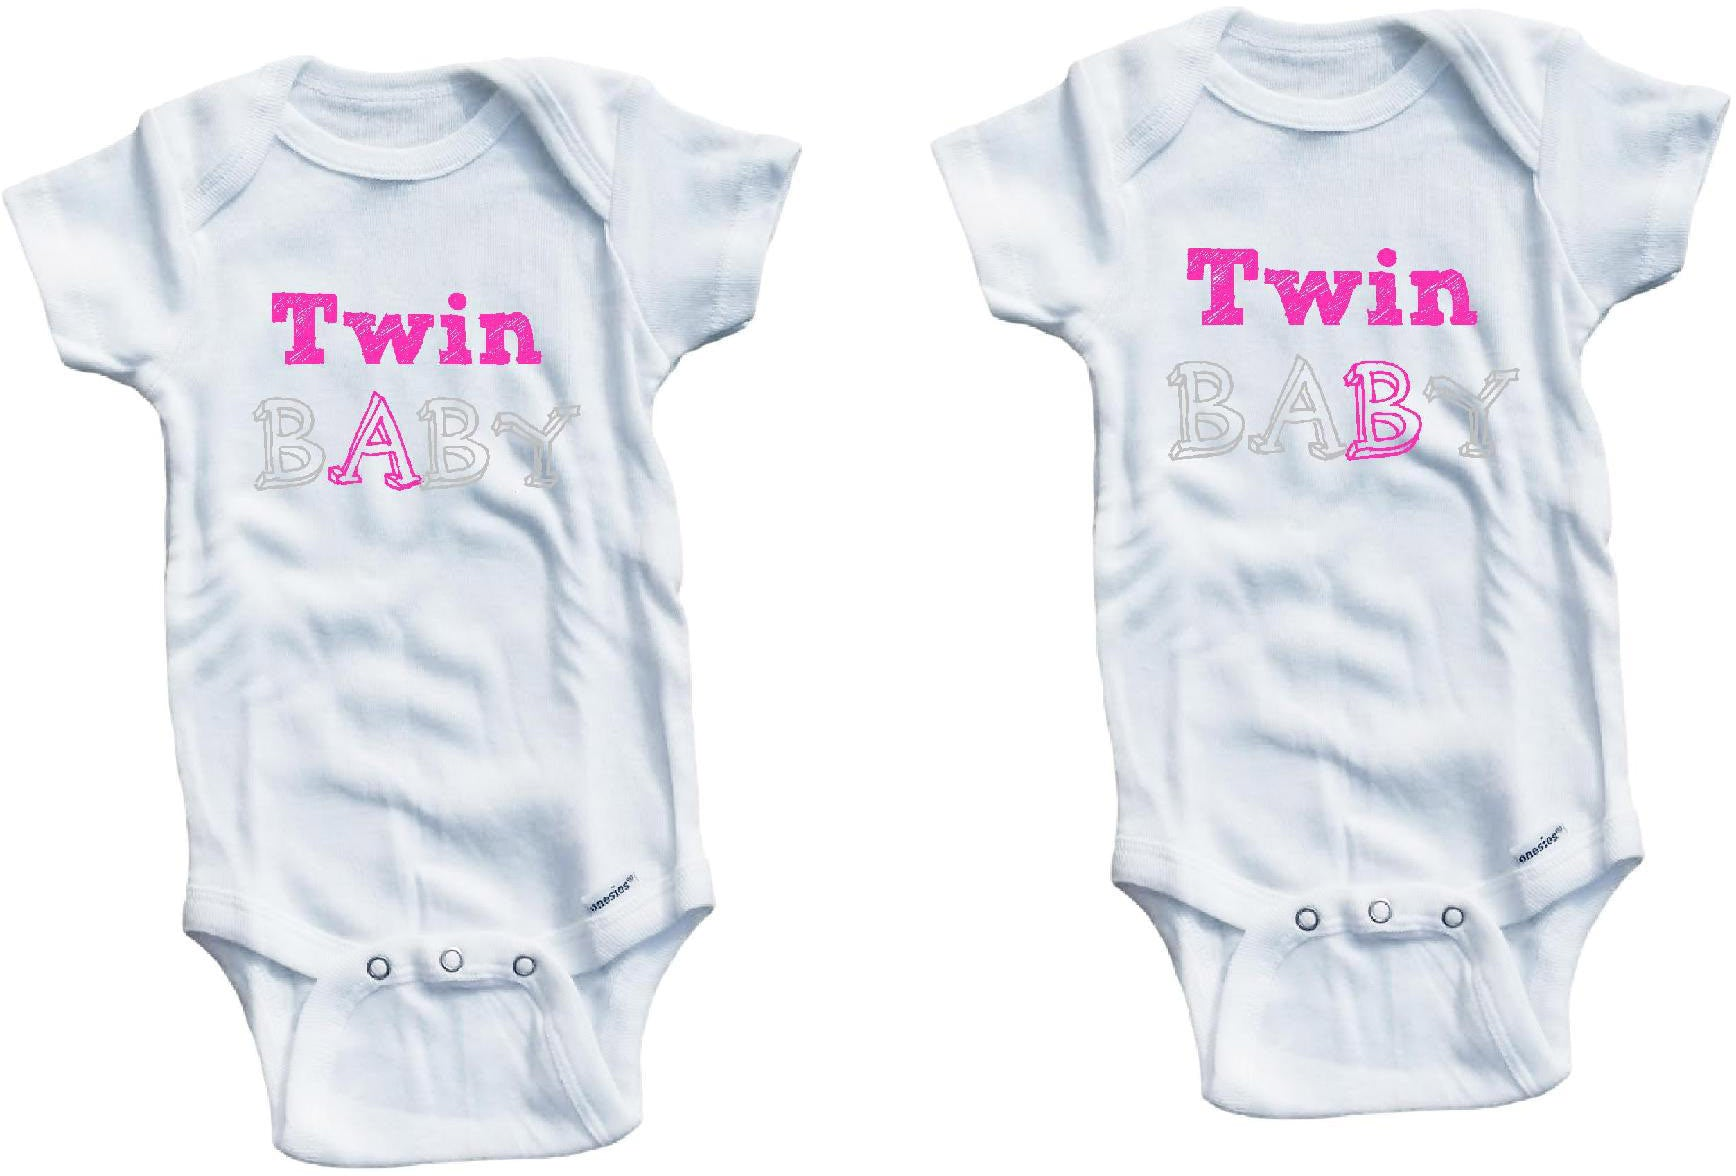 Twin baby A B one piece set cute infant clothing funny baby clothes